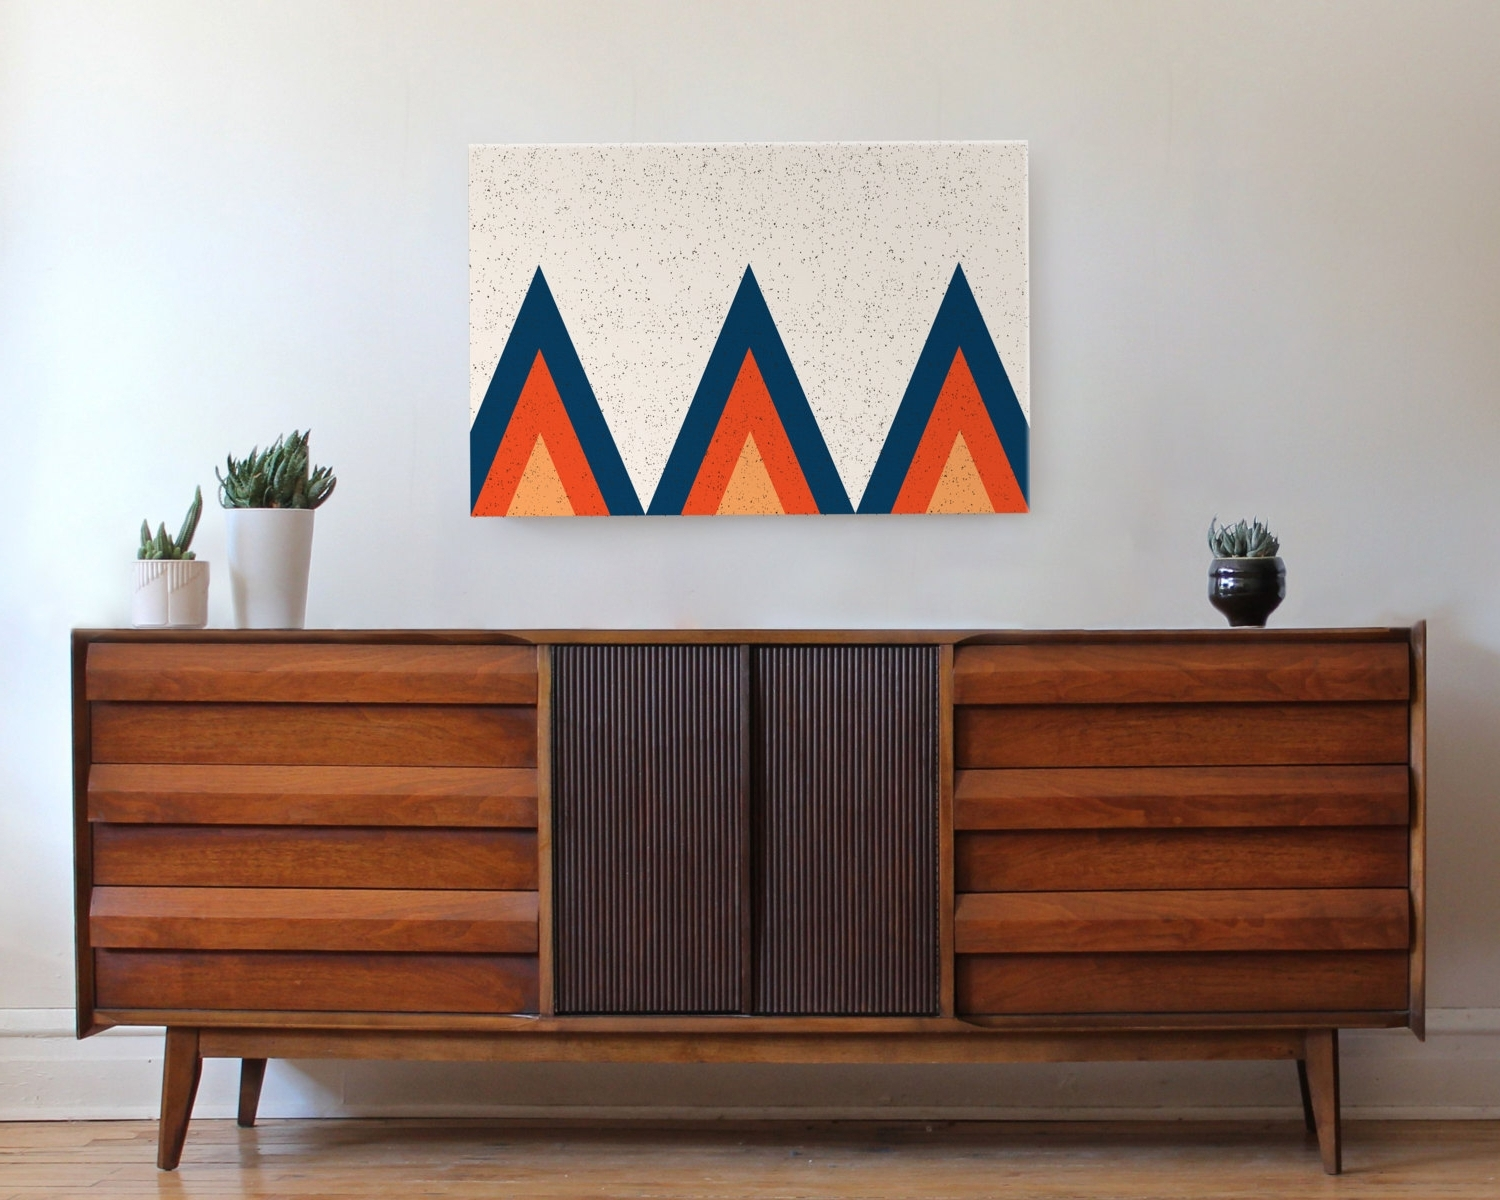 2018 Mid Century Modern Wall Art With Regard To Mid Century Modern Wood Wall Art Best Mid Century Modern Wall Art (View 2 of 15)